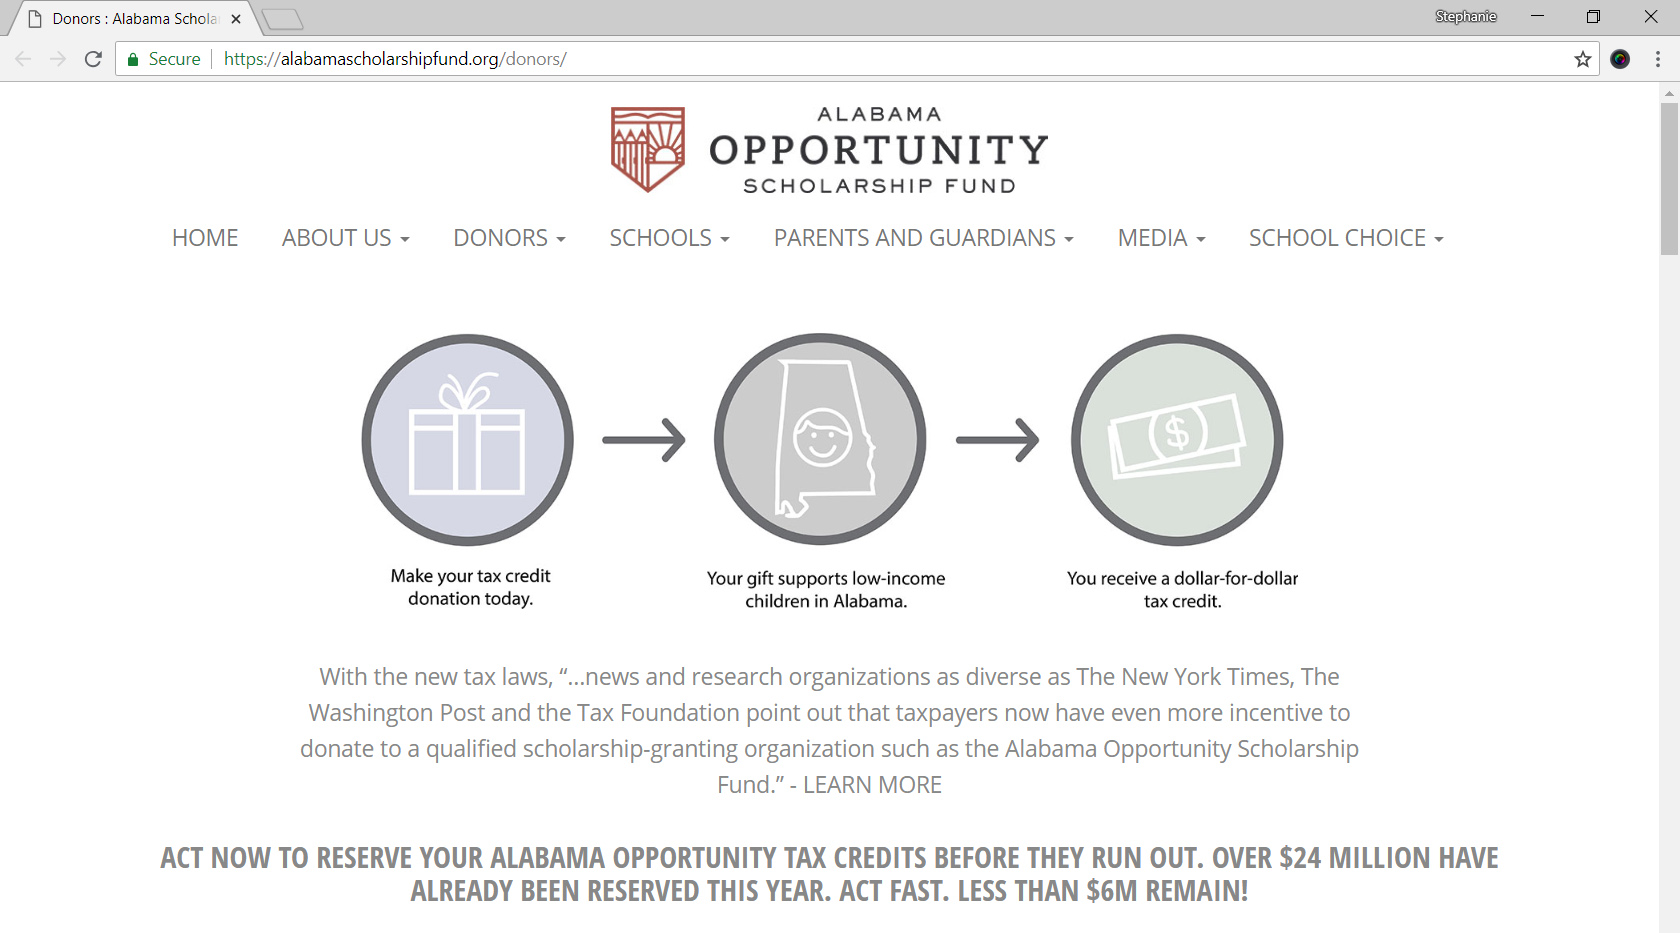 Alabama Opportunity Scholarship Fund Donors Page Screenshot